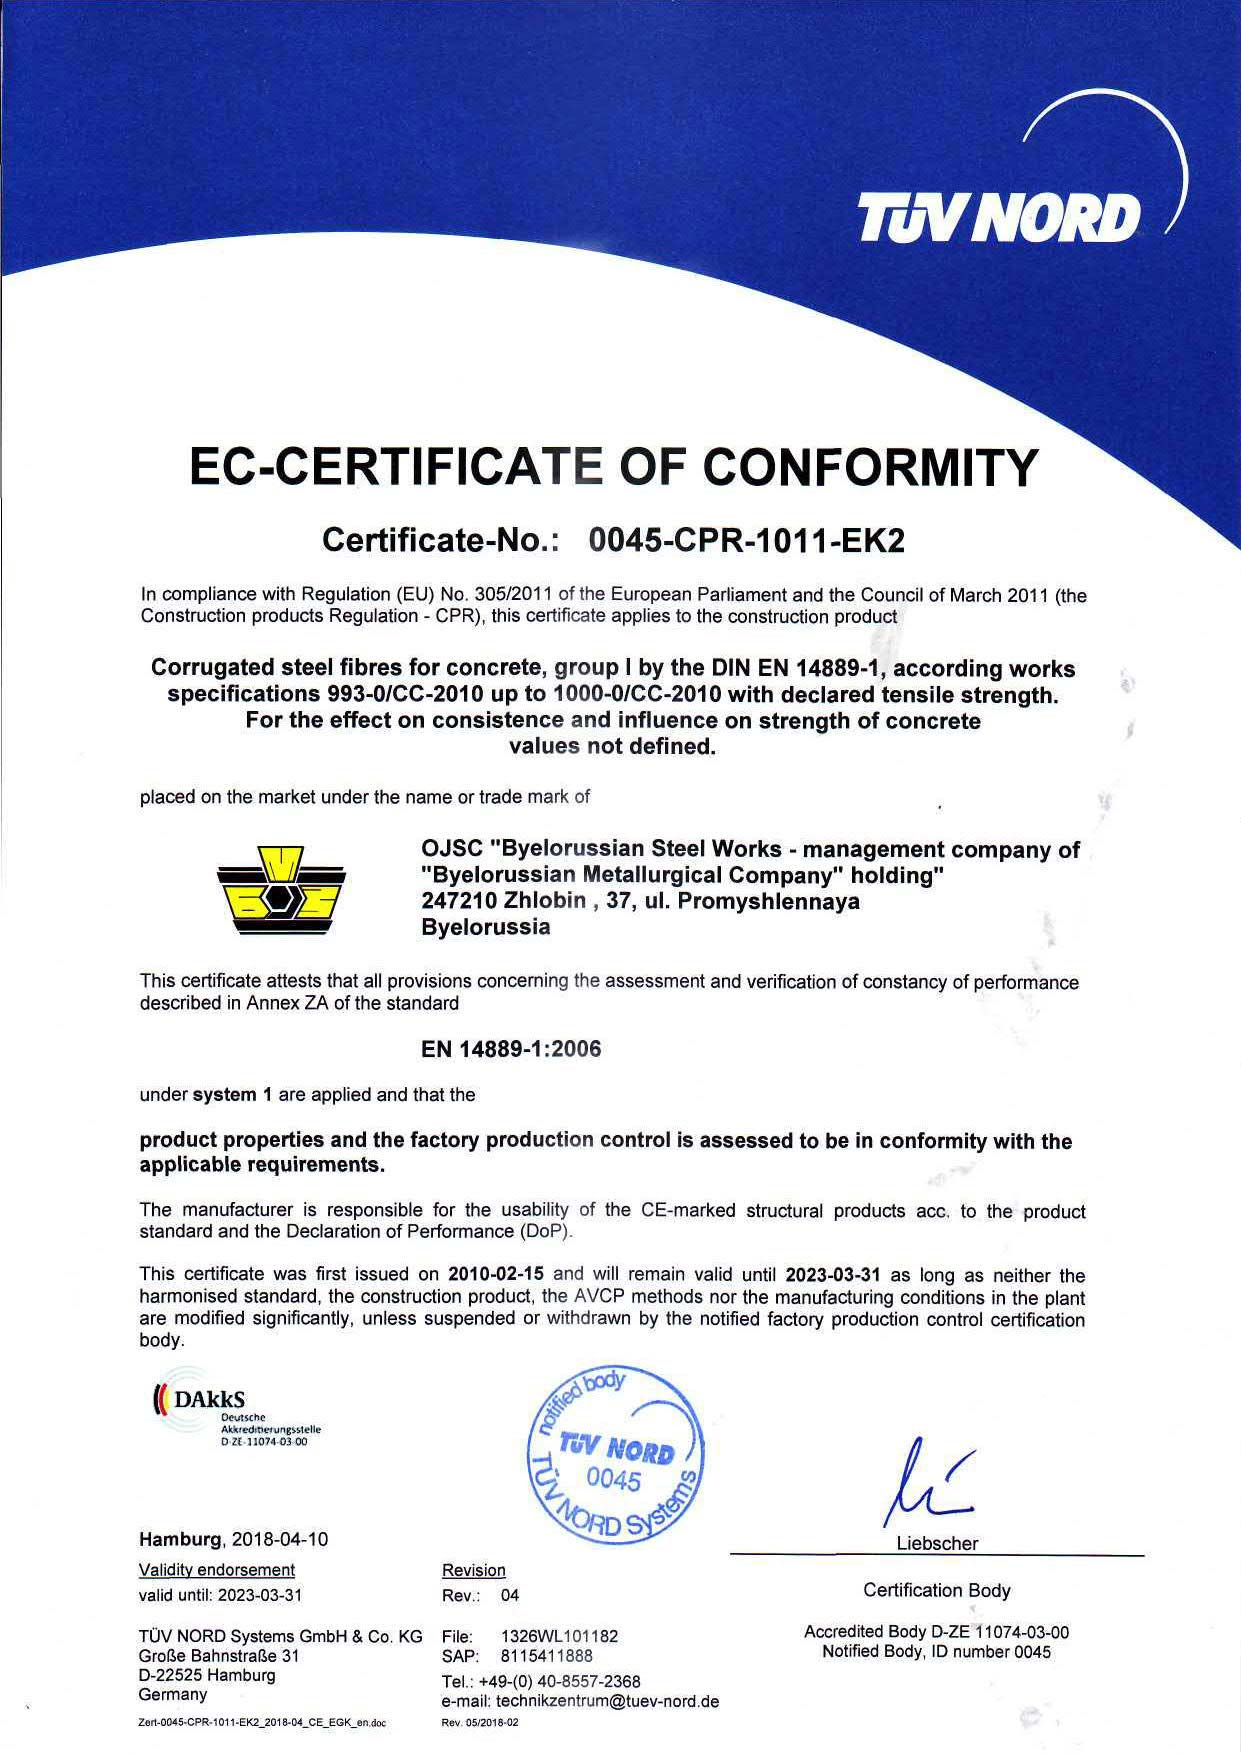 Certificate TUV NORD (Germany)No0045-CPD-1011-EK2 for production of steel wave fiber for concrete according to the requirements of DIN EN 14889-1:2006 and Directive 89/106/EC (the right to apply CE-mark).